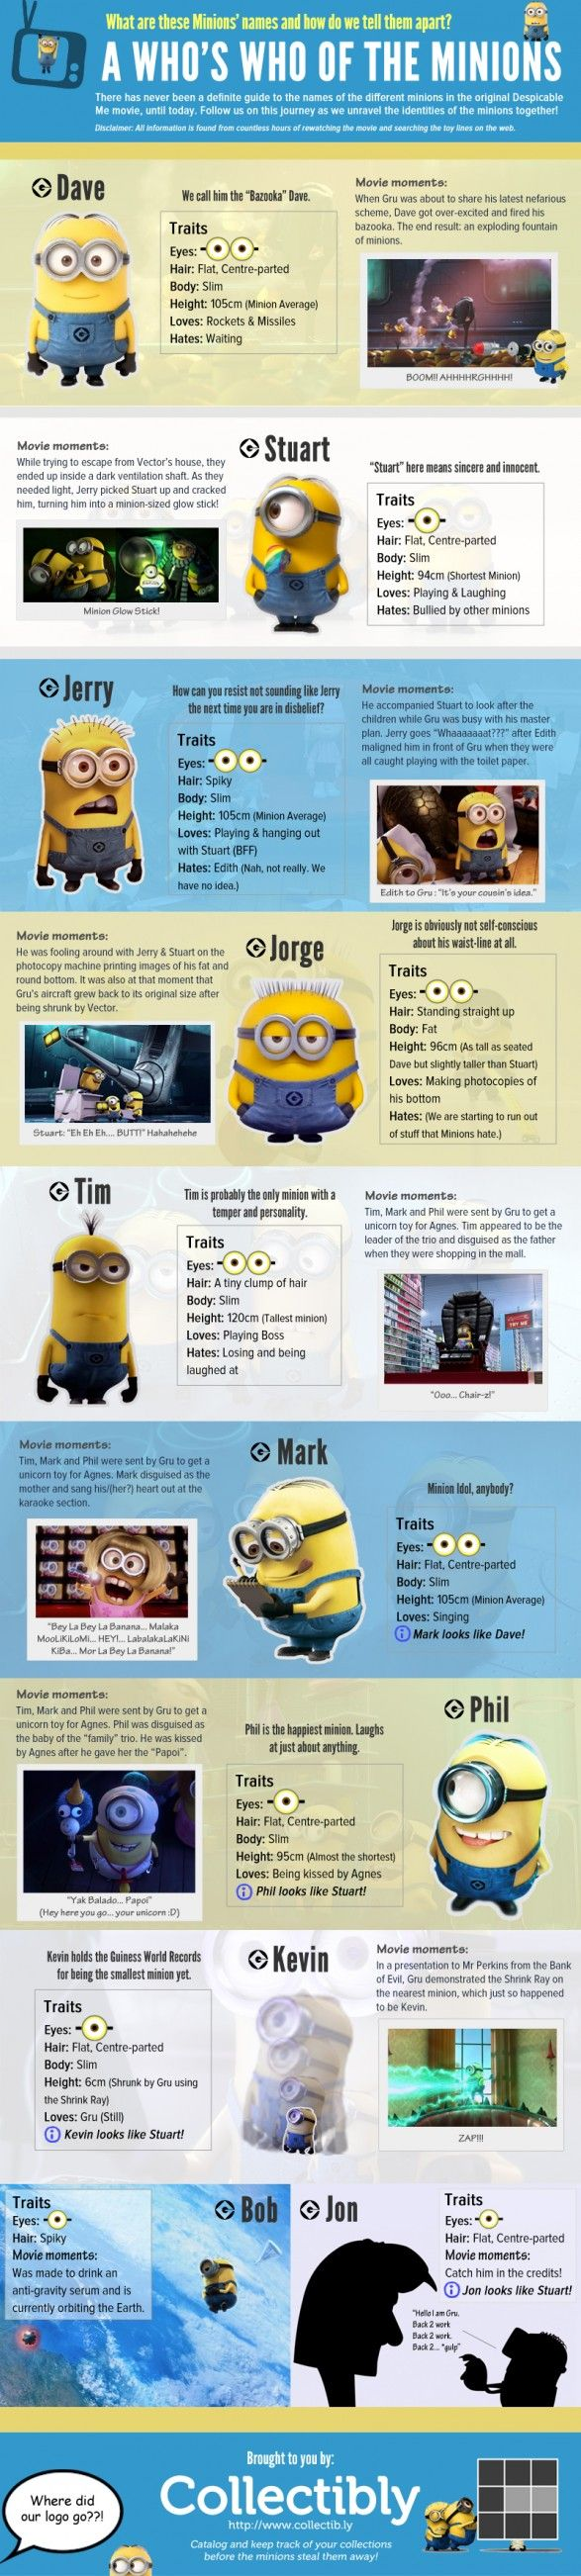 Just Who Are The Minions? – Infographic